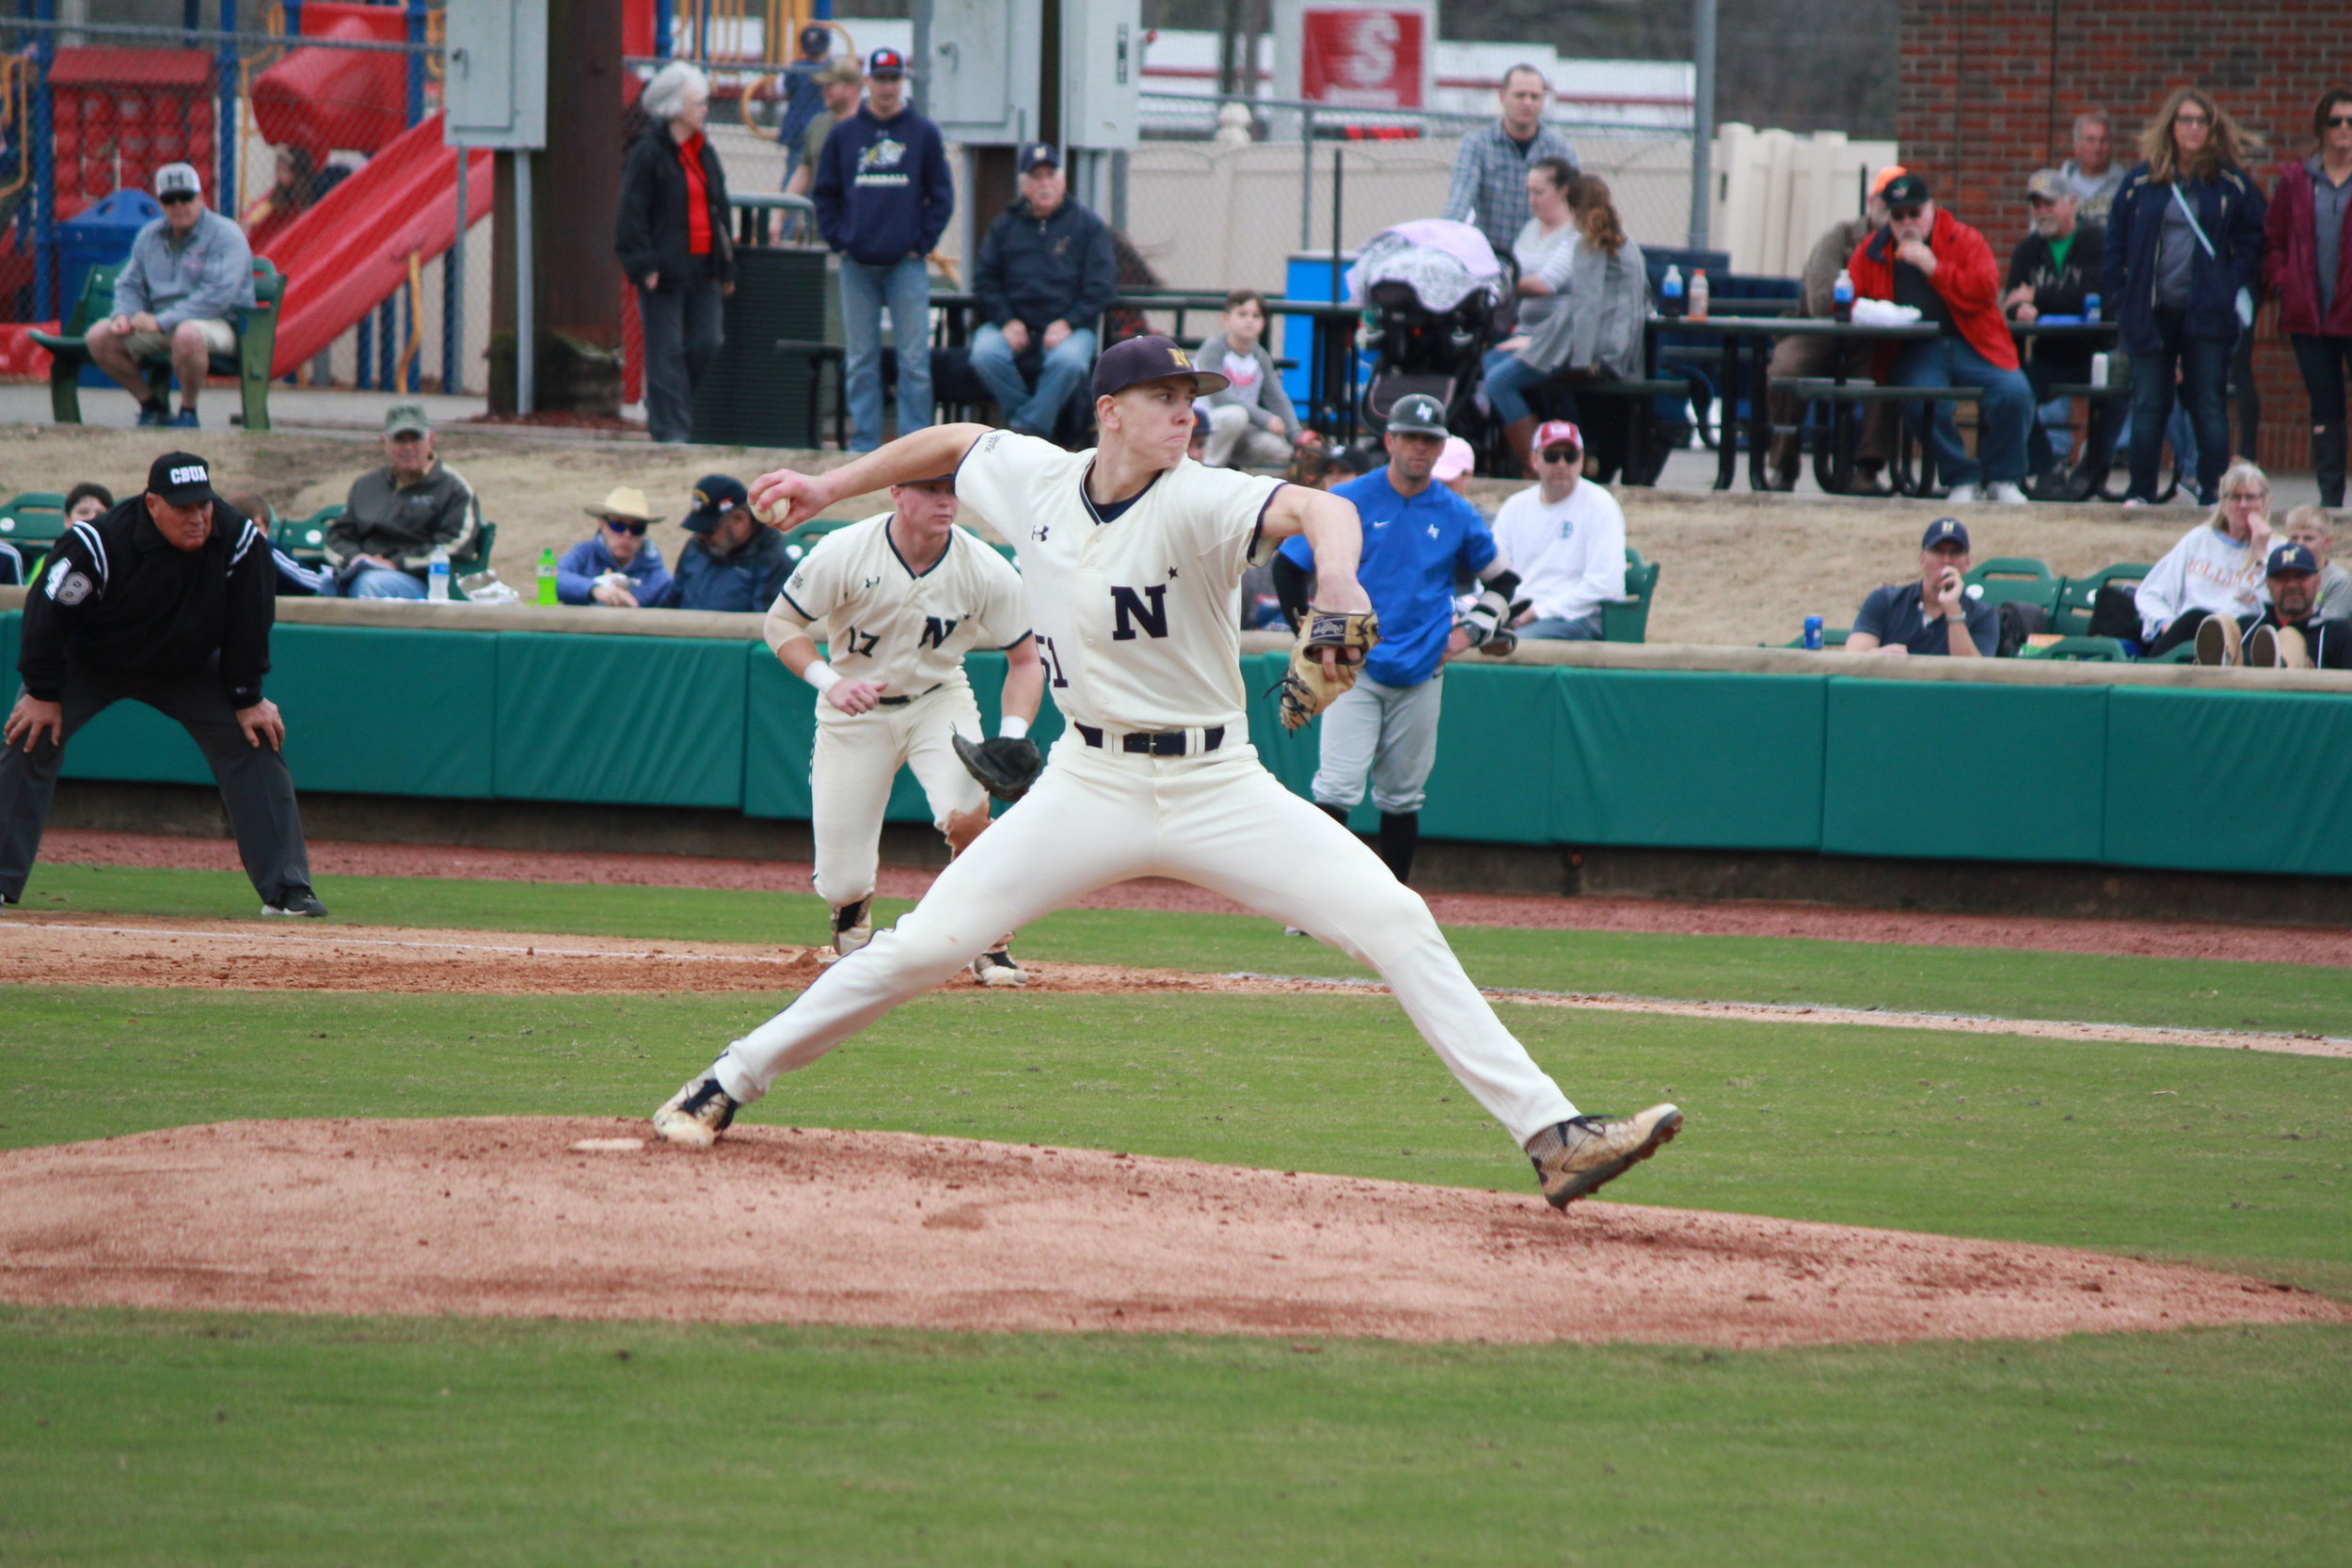 Navy sophomore pitcher Jared Leins (51), Sunday's Game 1 starter, prepares to deliver a pitch. Photo by Linda Whittington / Neuse News